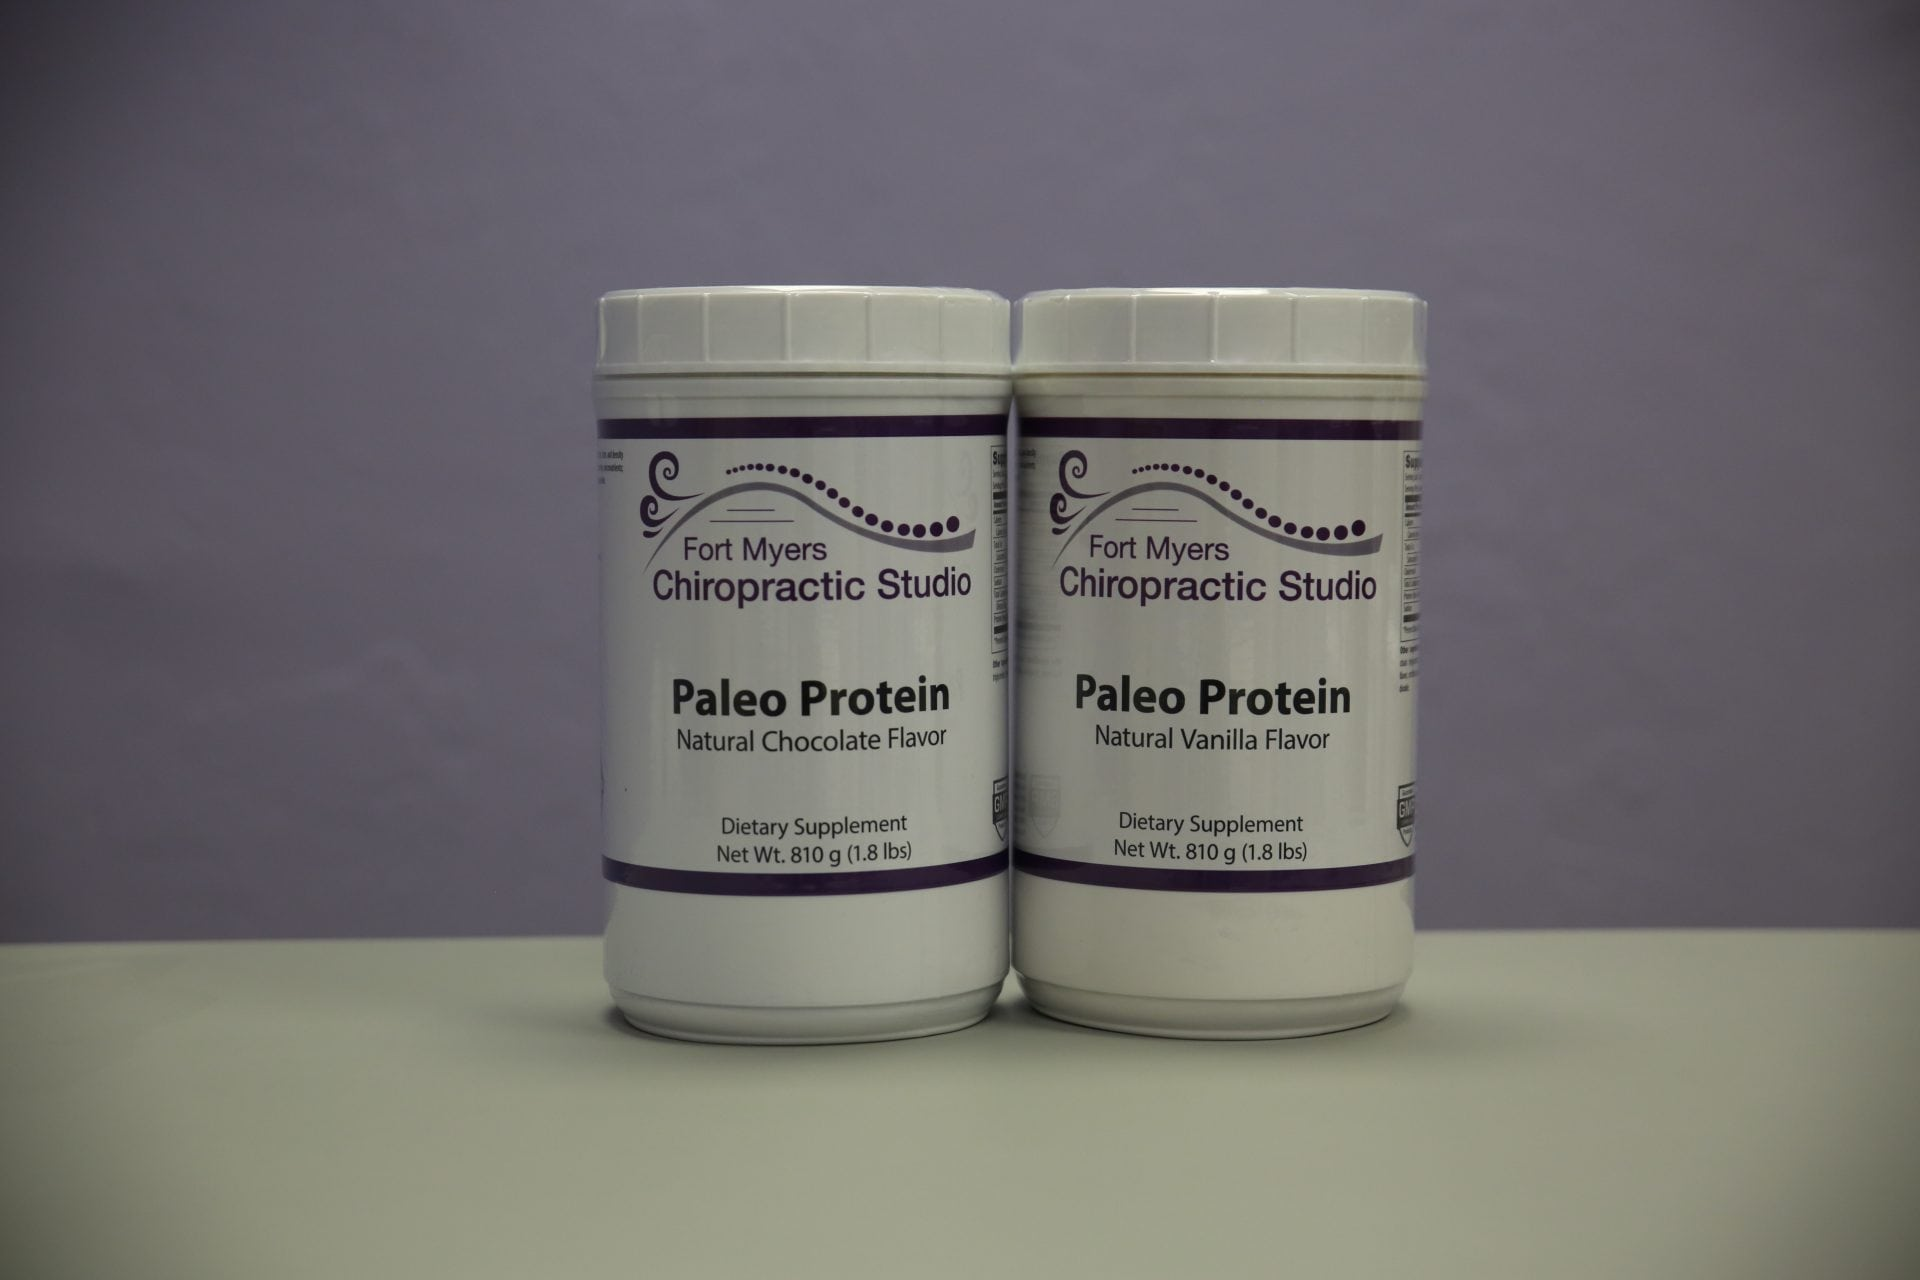 Paleo Protein Dietary Supplements